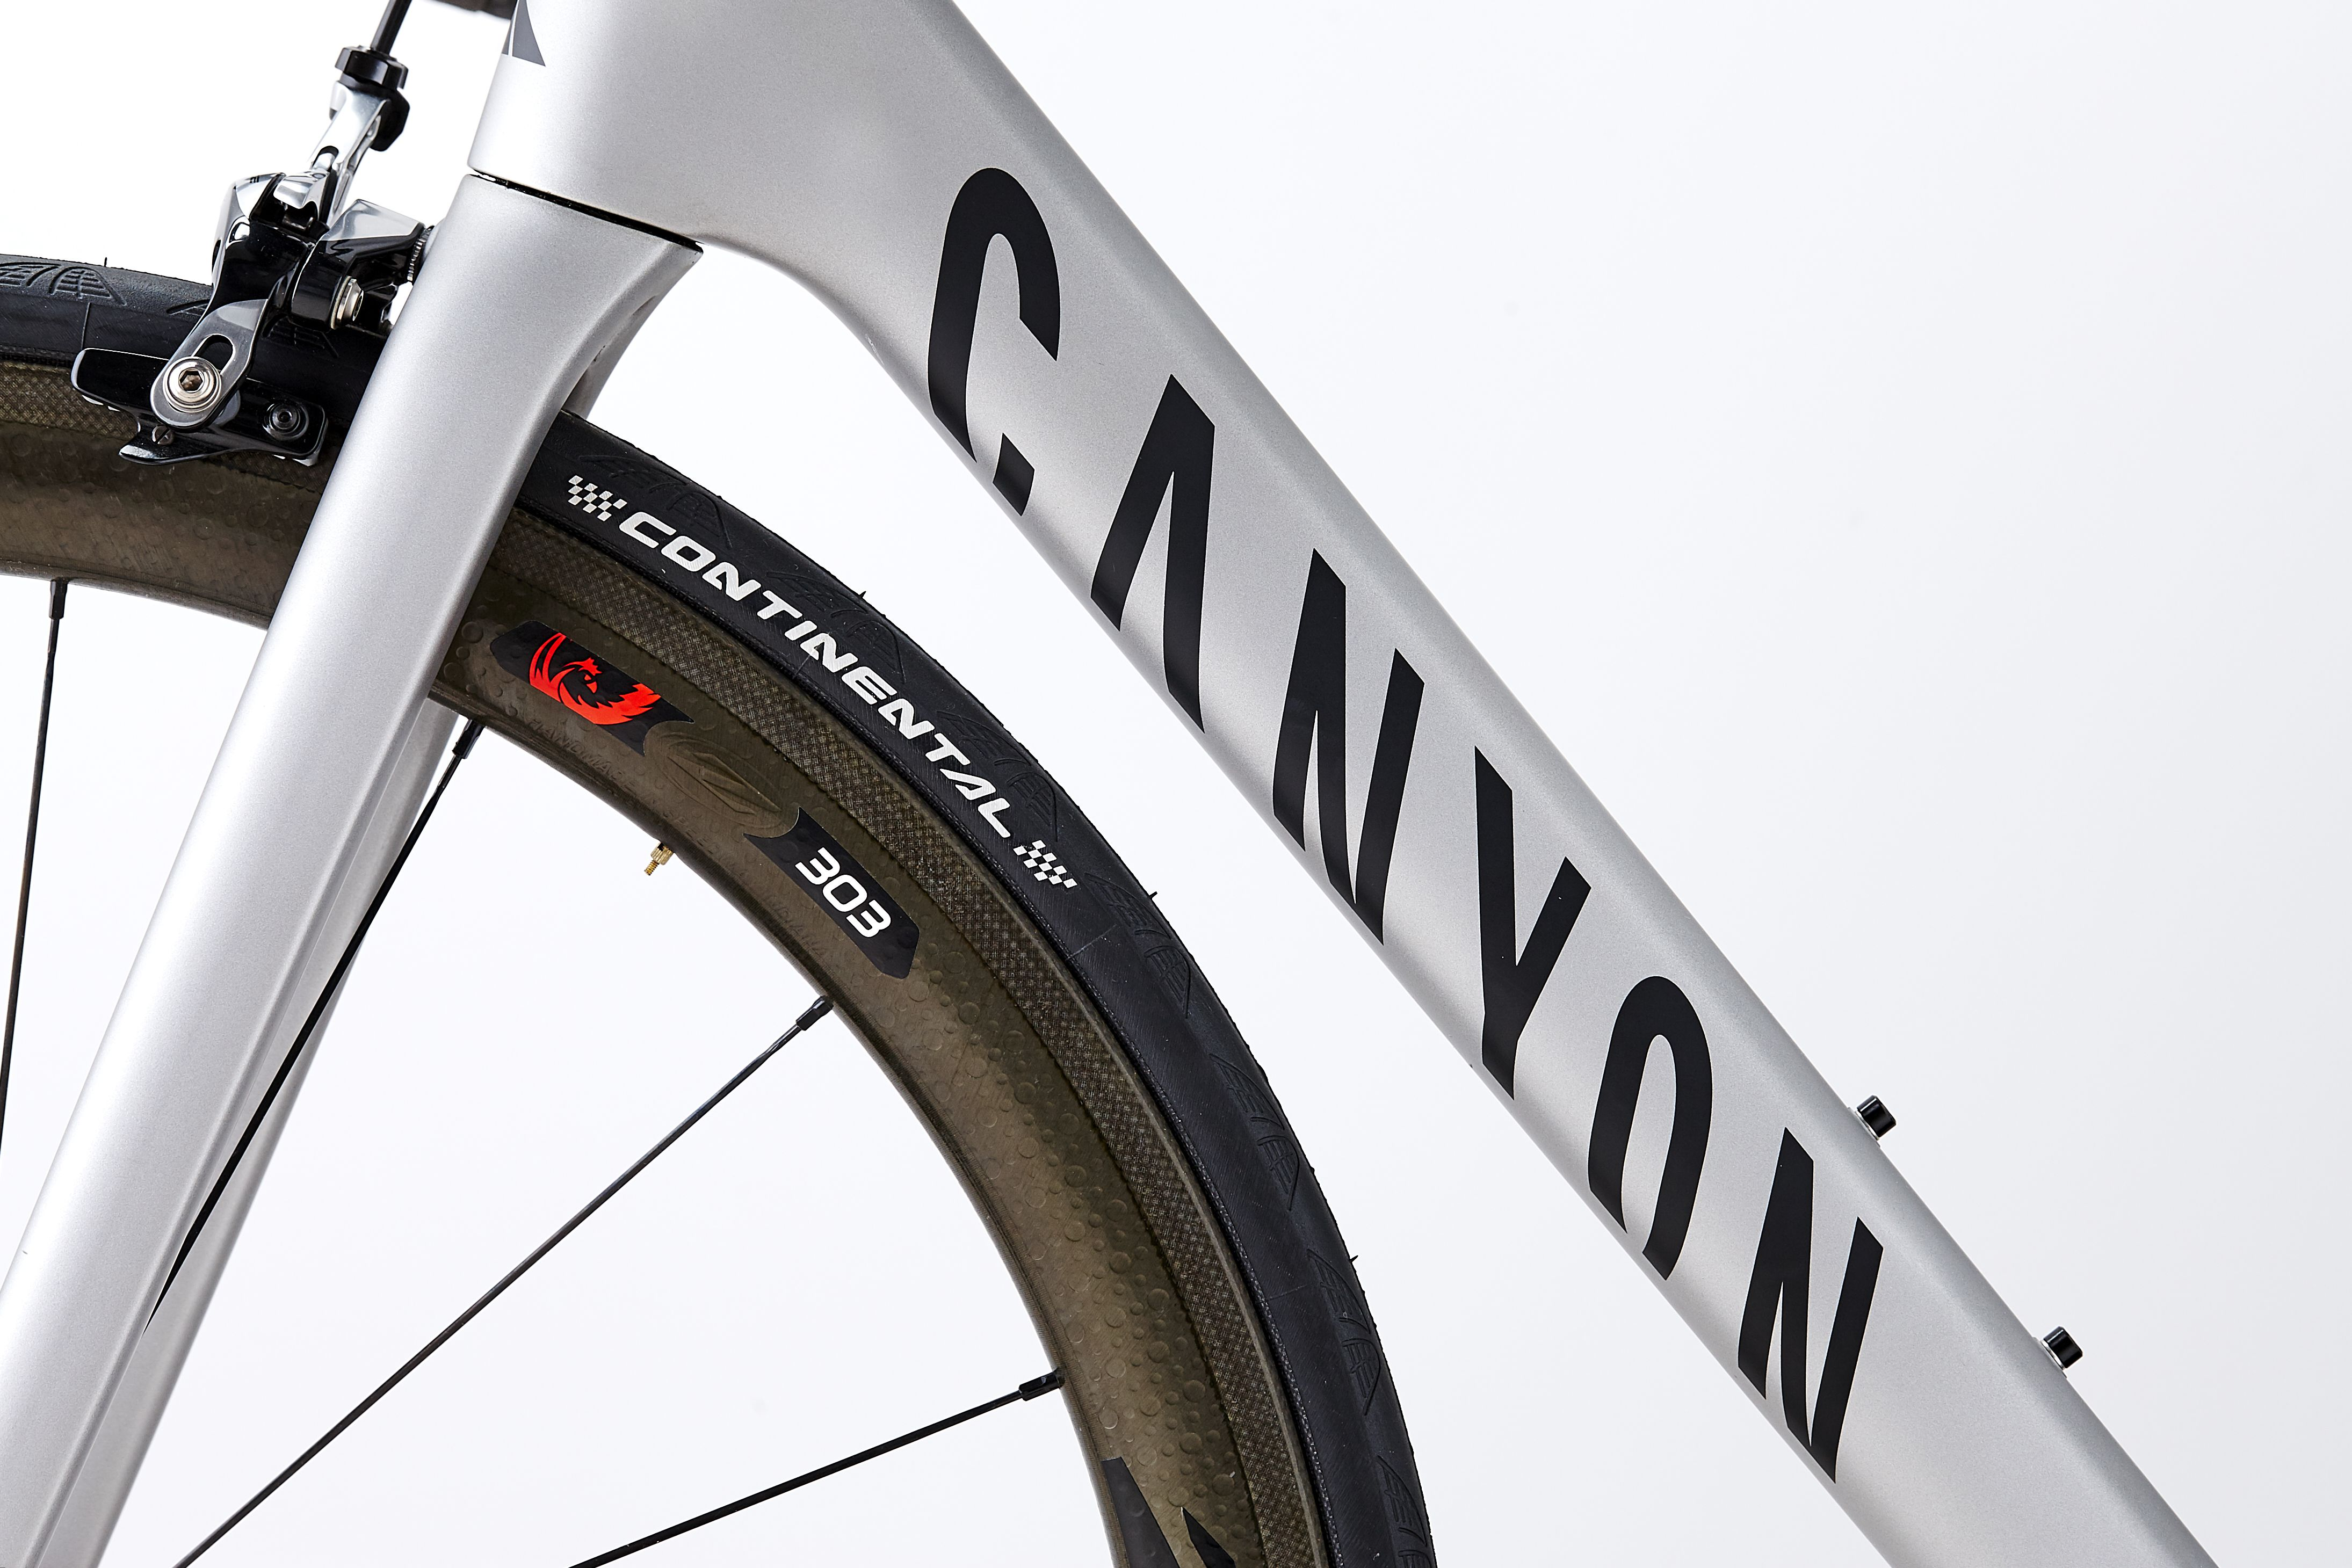 Rcuk100 Canyon Ultimate Cf Slx Road Bike Review Racefiets